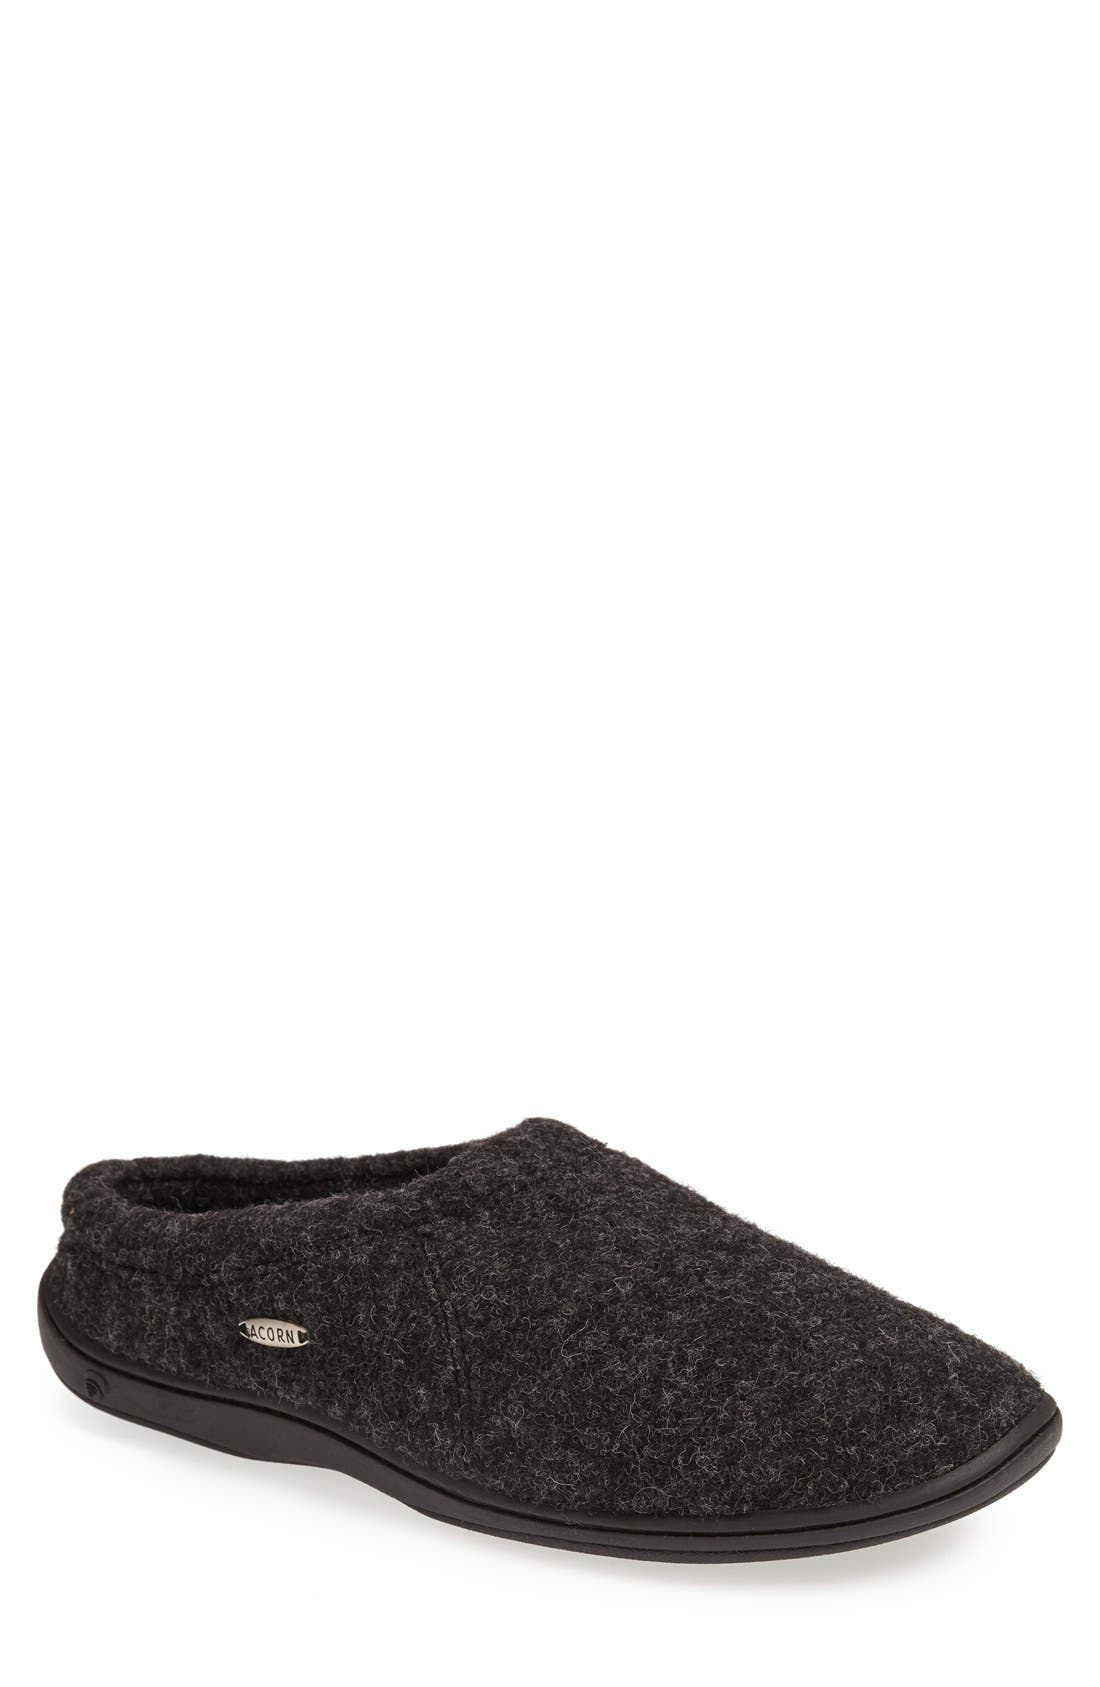 'Digby' Slipper,                         Main,                         color,